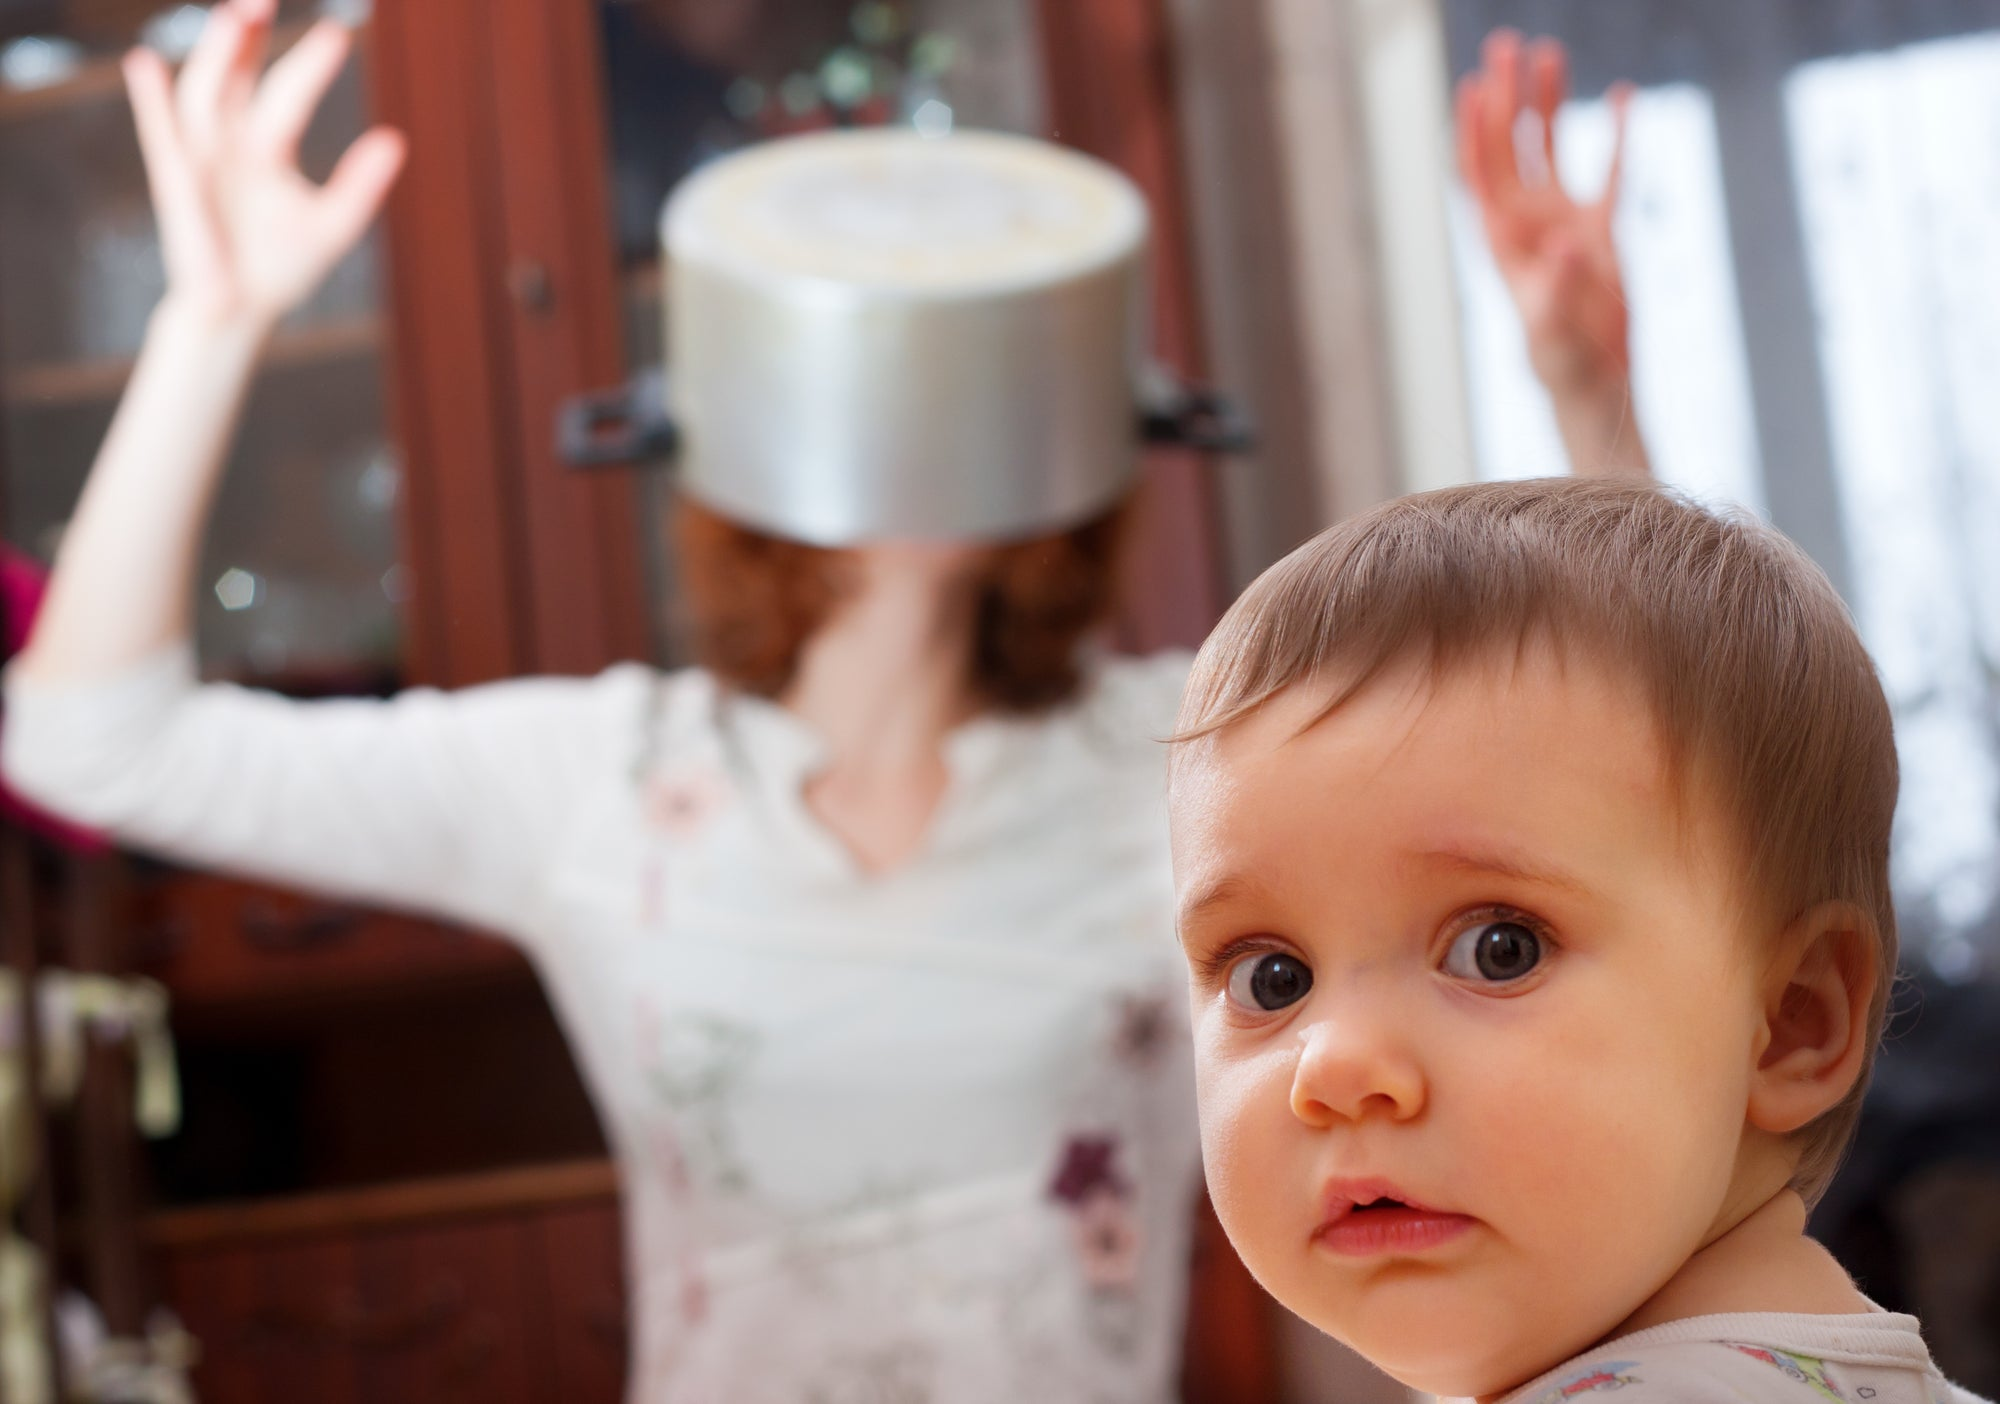 Toddler looks at us as mother is stressed in the background with a pot over her head.